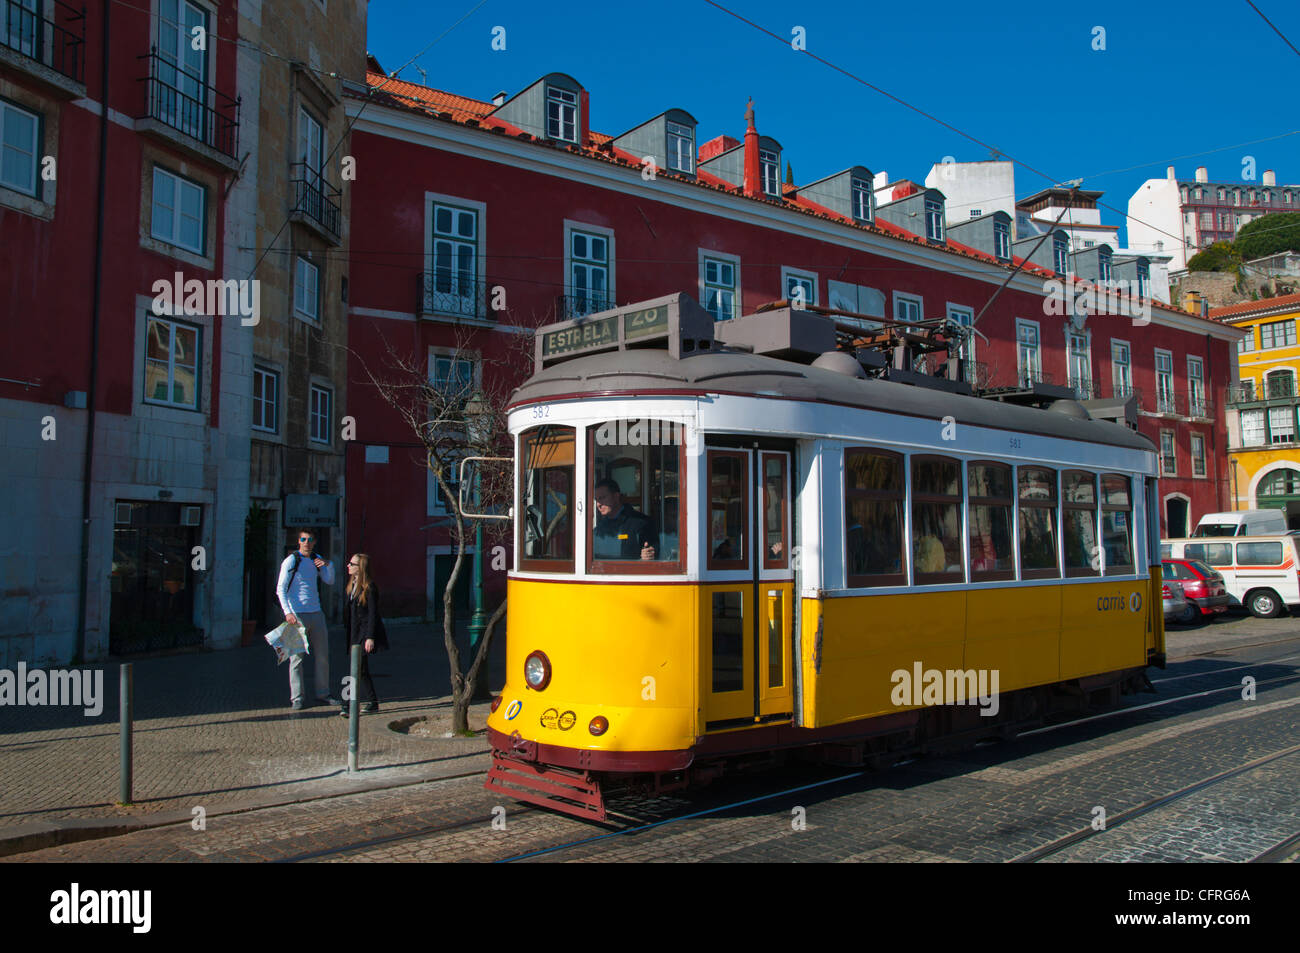 Tram 28 in Rua do Limoeiro street Alfama district central Lisbon Portugal Europe - Stock Image